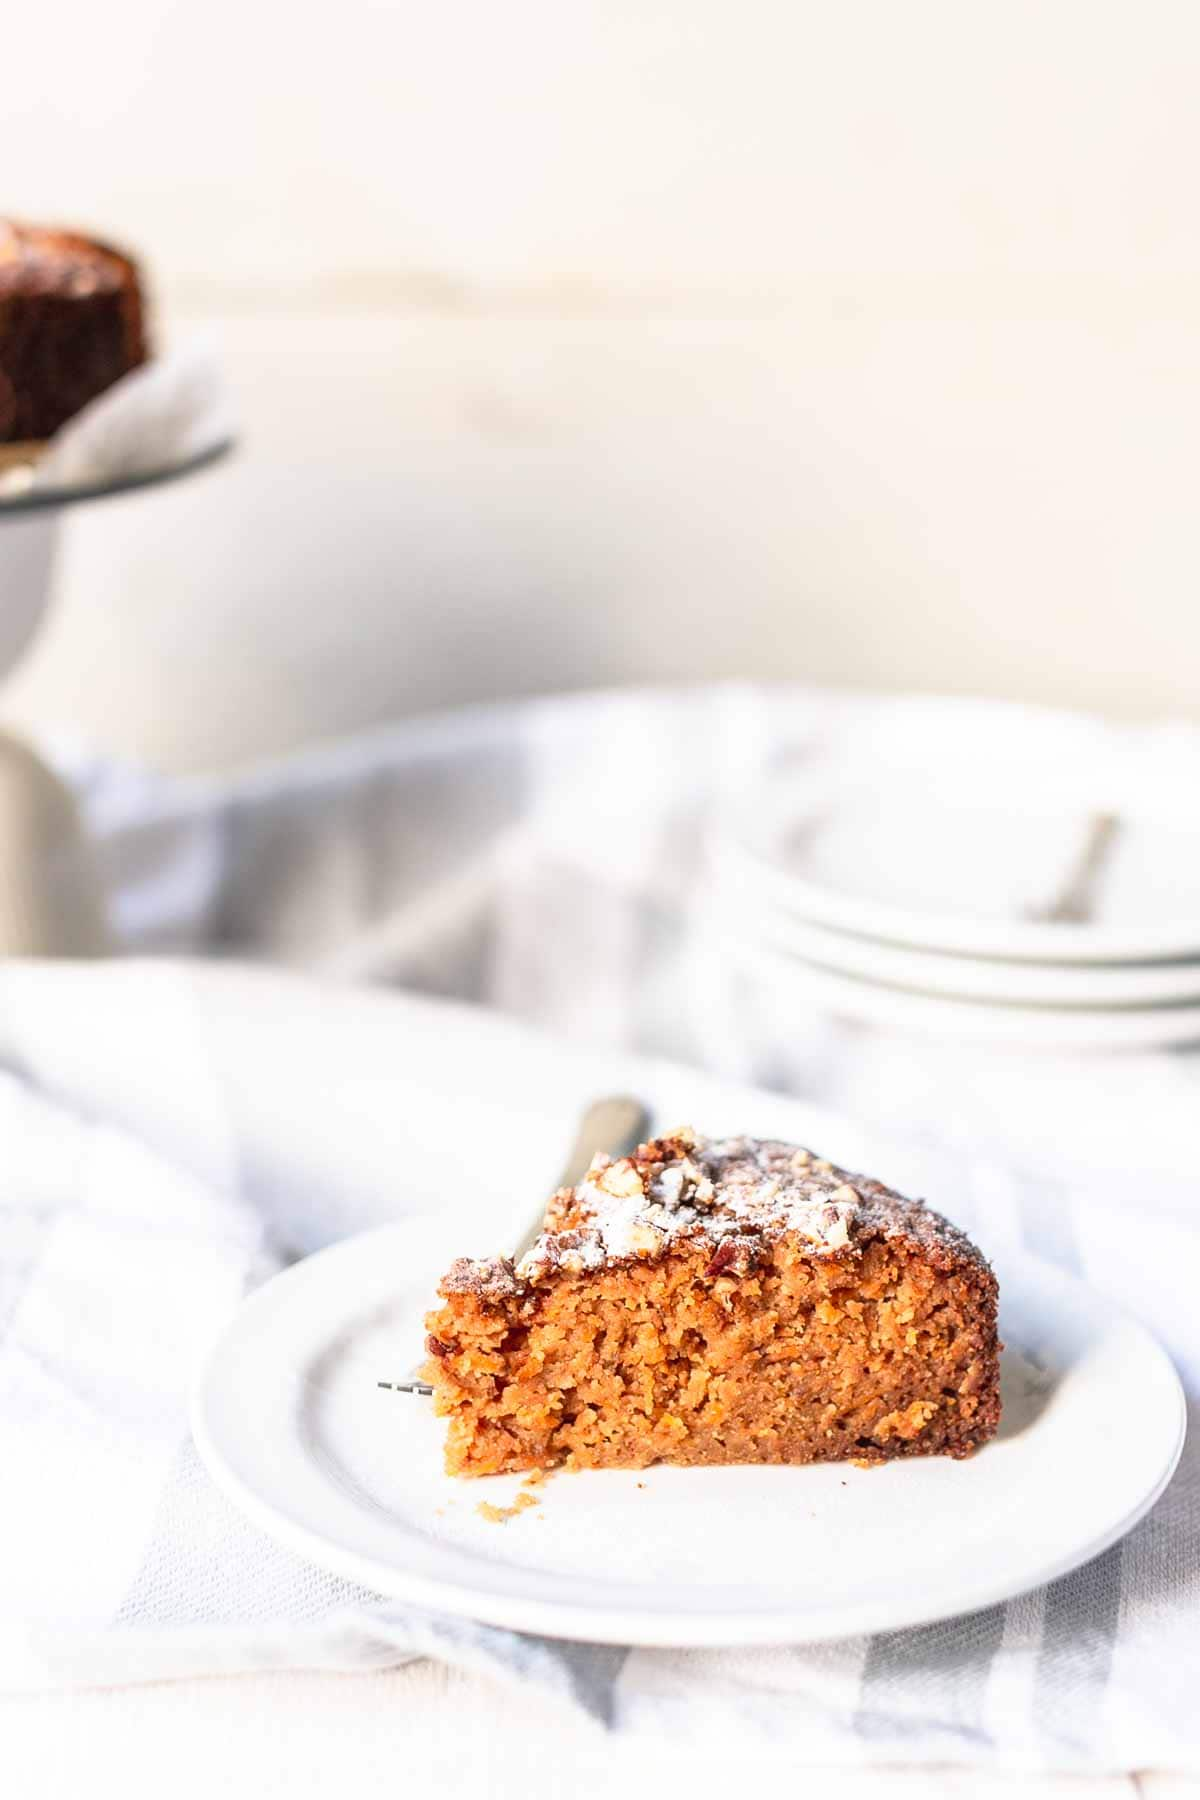 How to make carrot cake? Take a look at this homemade carrot cake recipe. Filled with carrots, apples and pecans. The best moist carrot cake you ever tried. Visit Fastfoodbistro.com #fastfoodbistro #carrotcake #carrotcakerecipe #cake #cakerecipe